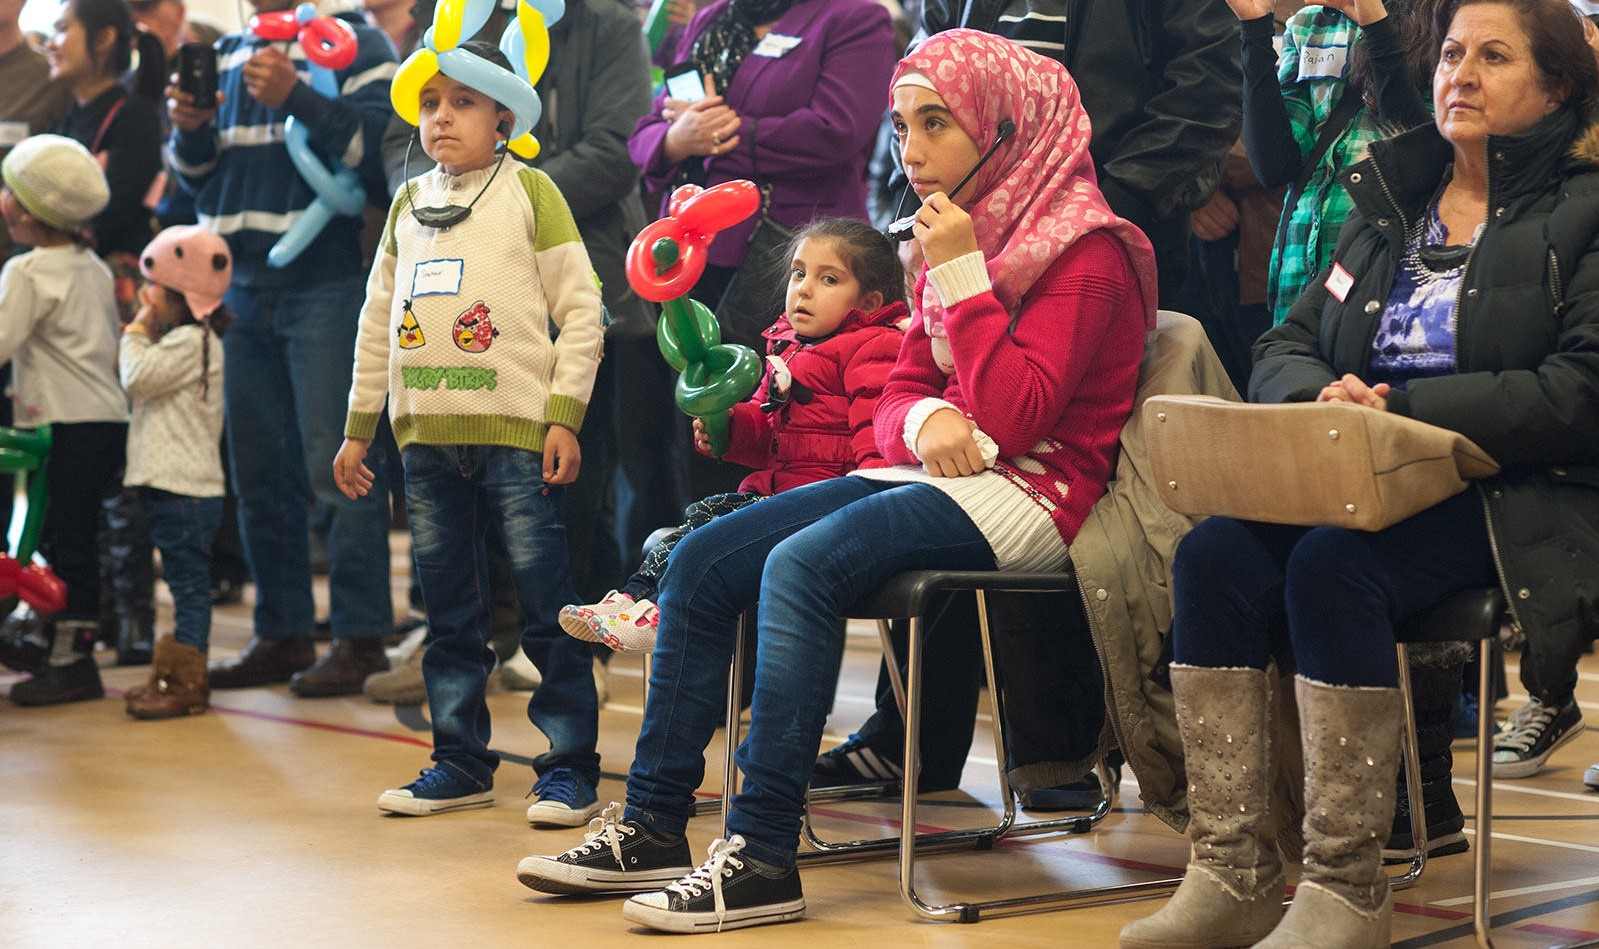 A refugee reception event in Prince Edward Island, Canada, March 2016 (Photo: Flickr/Government of Prince Edward Island)